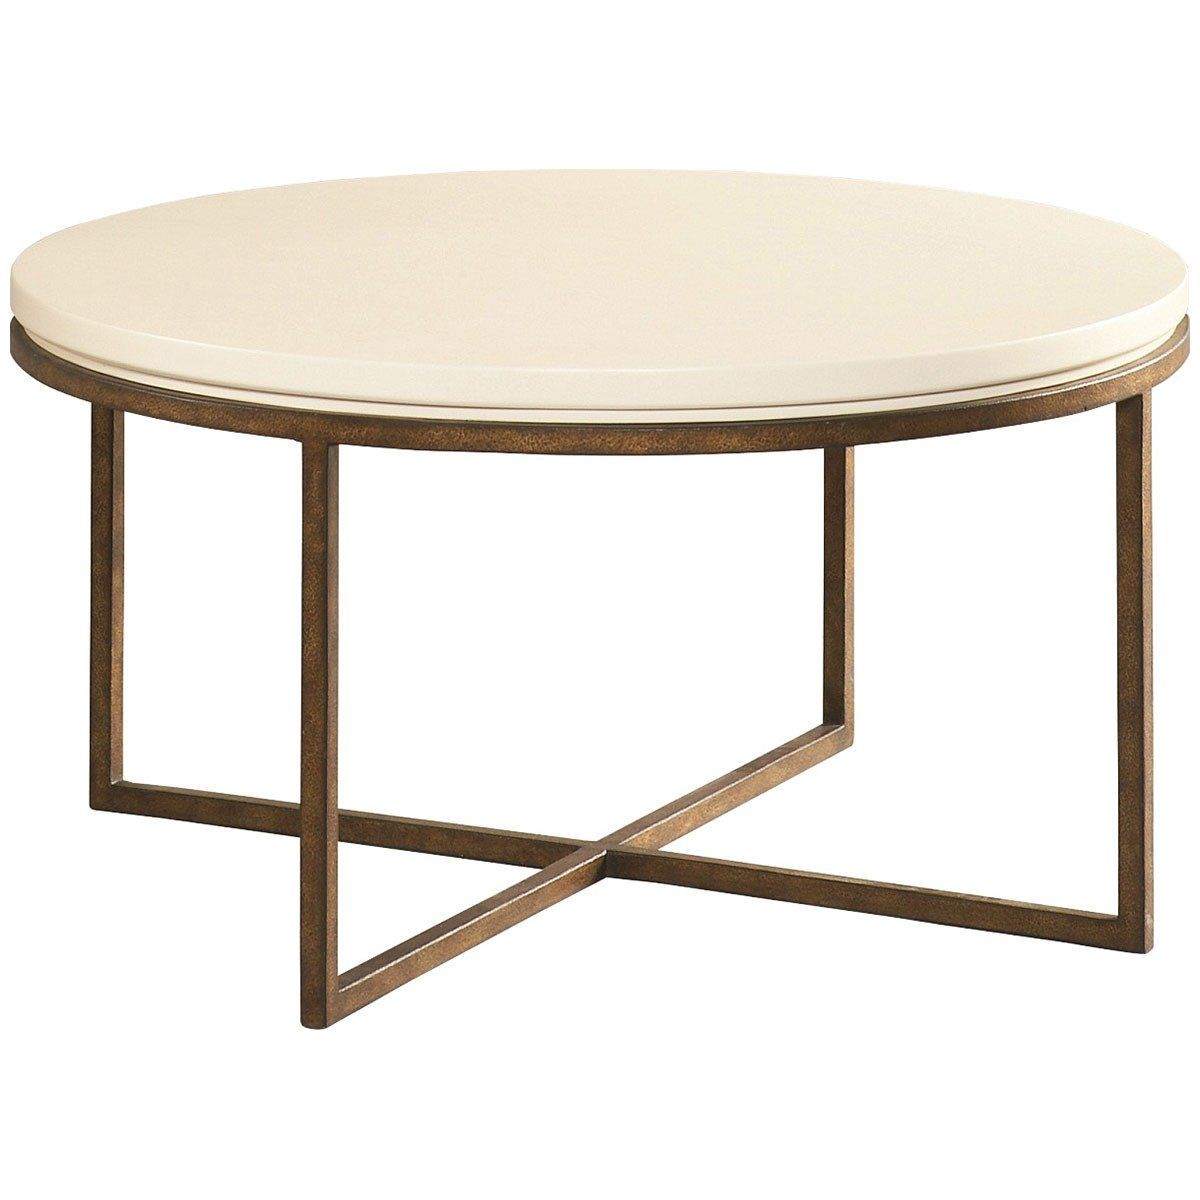 Cth Sherrill Occasional Round Cocktail Table 322 830 Round Cocktail Tables Table Transitional Coffee Table [ 1200 x 1200 Pixel ]